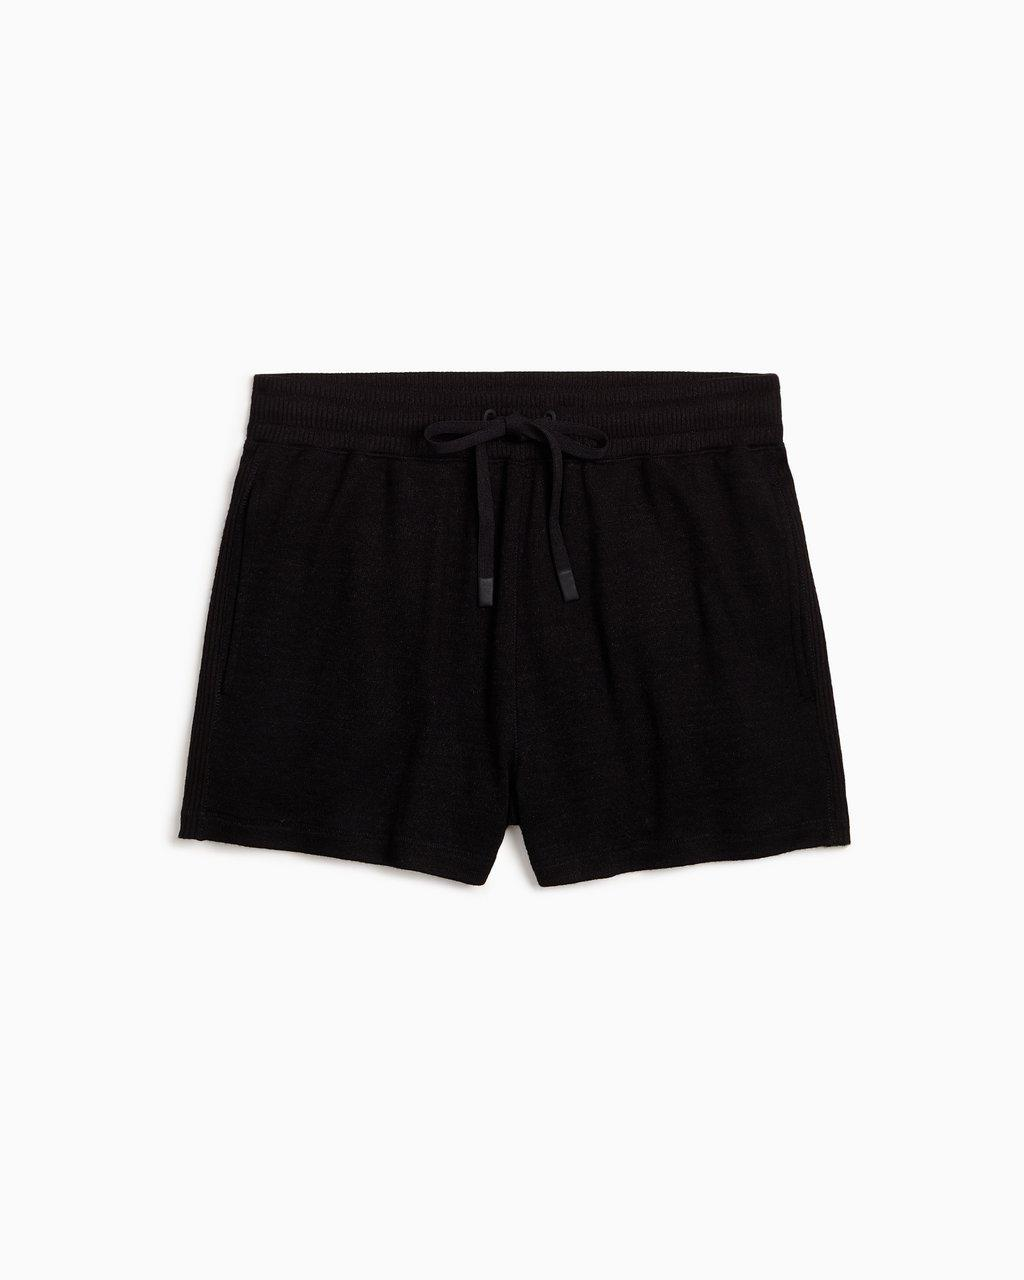 The Knit Jersey Short